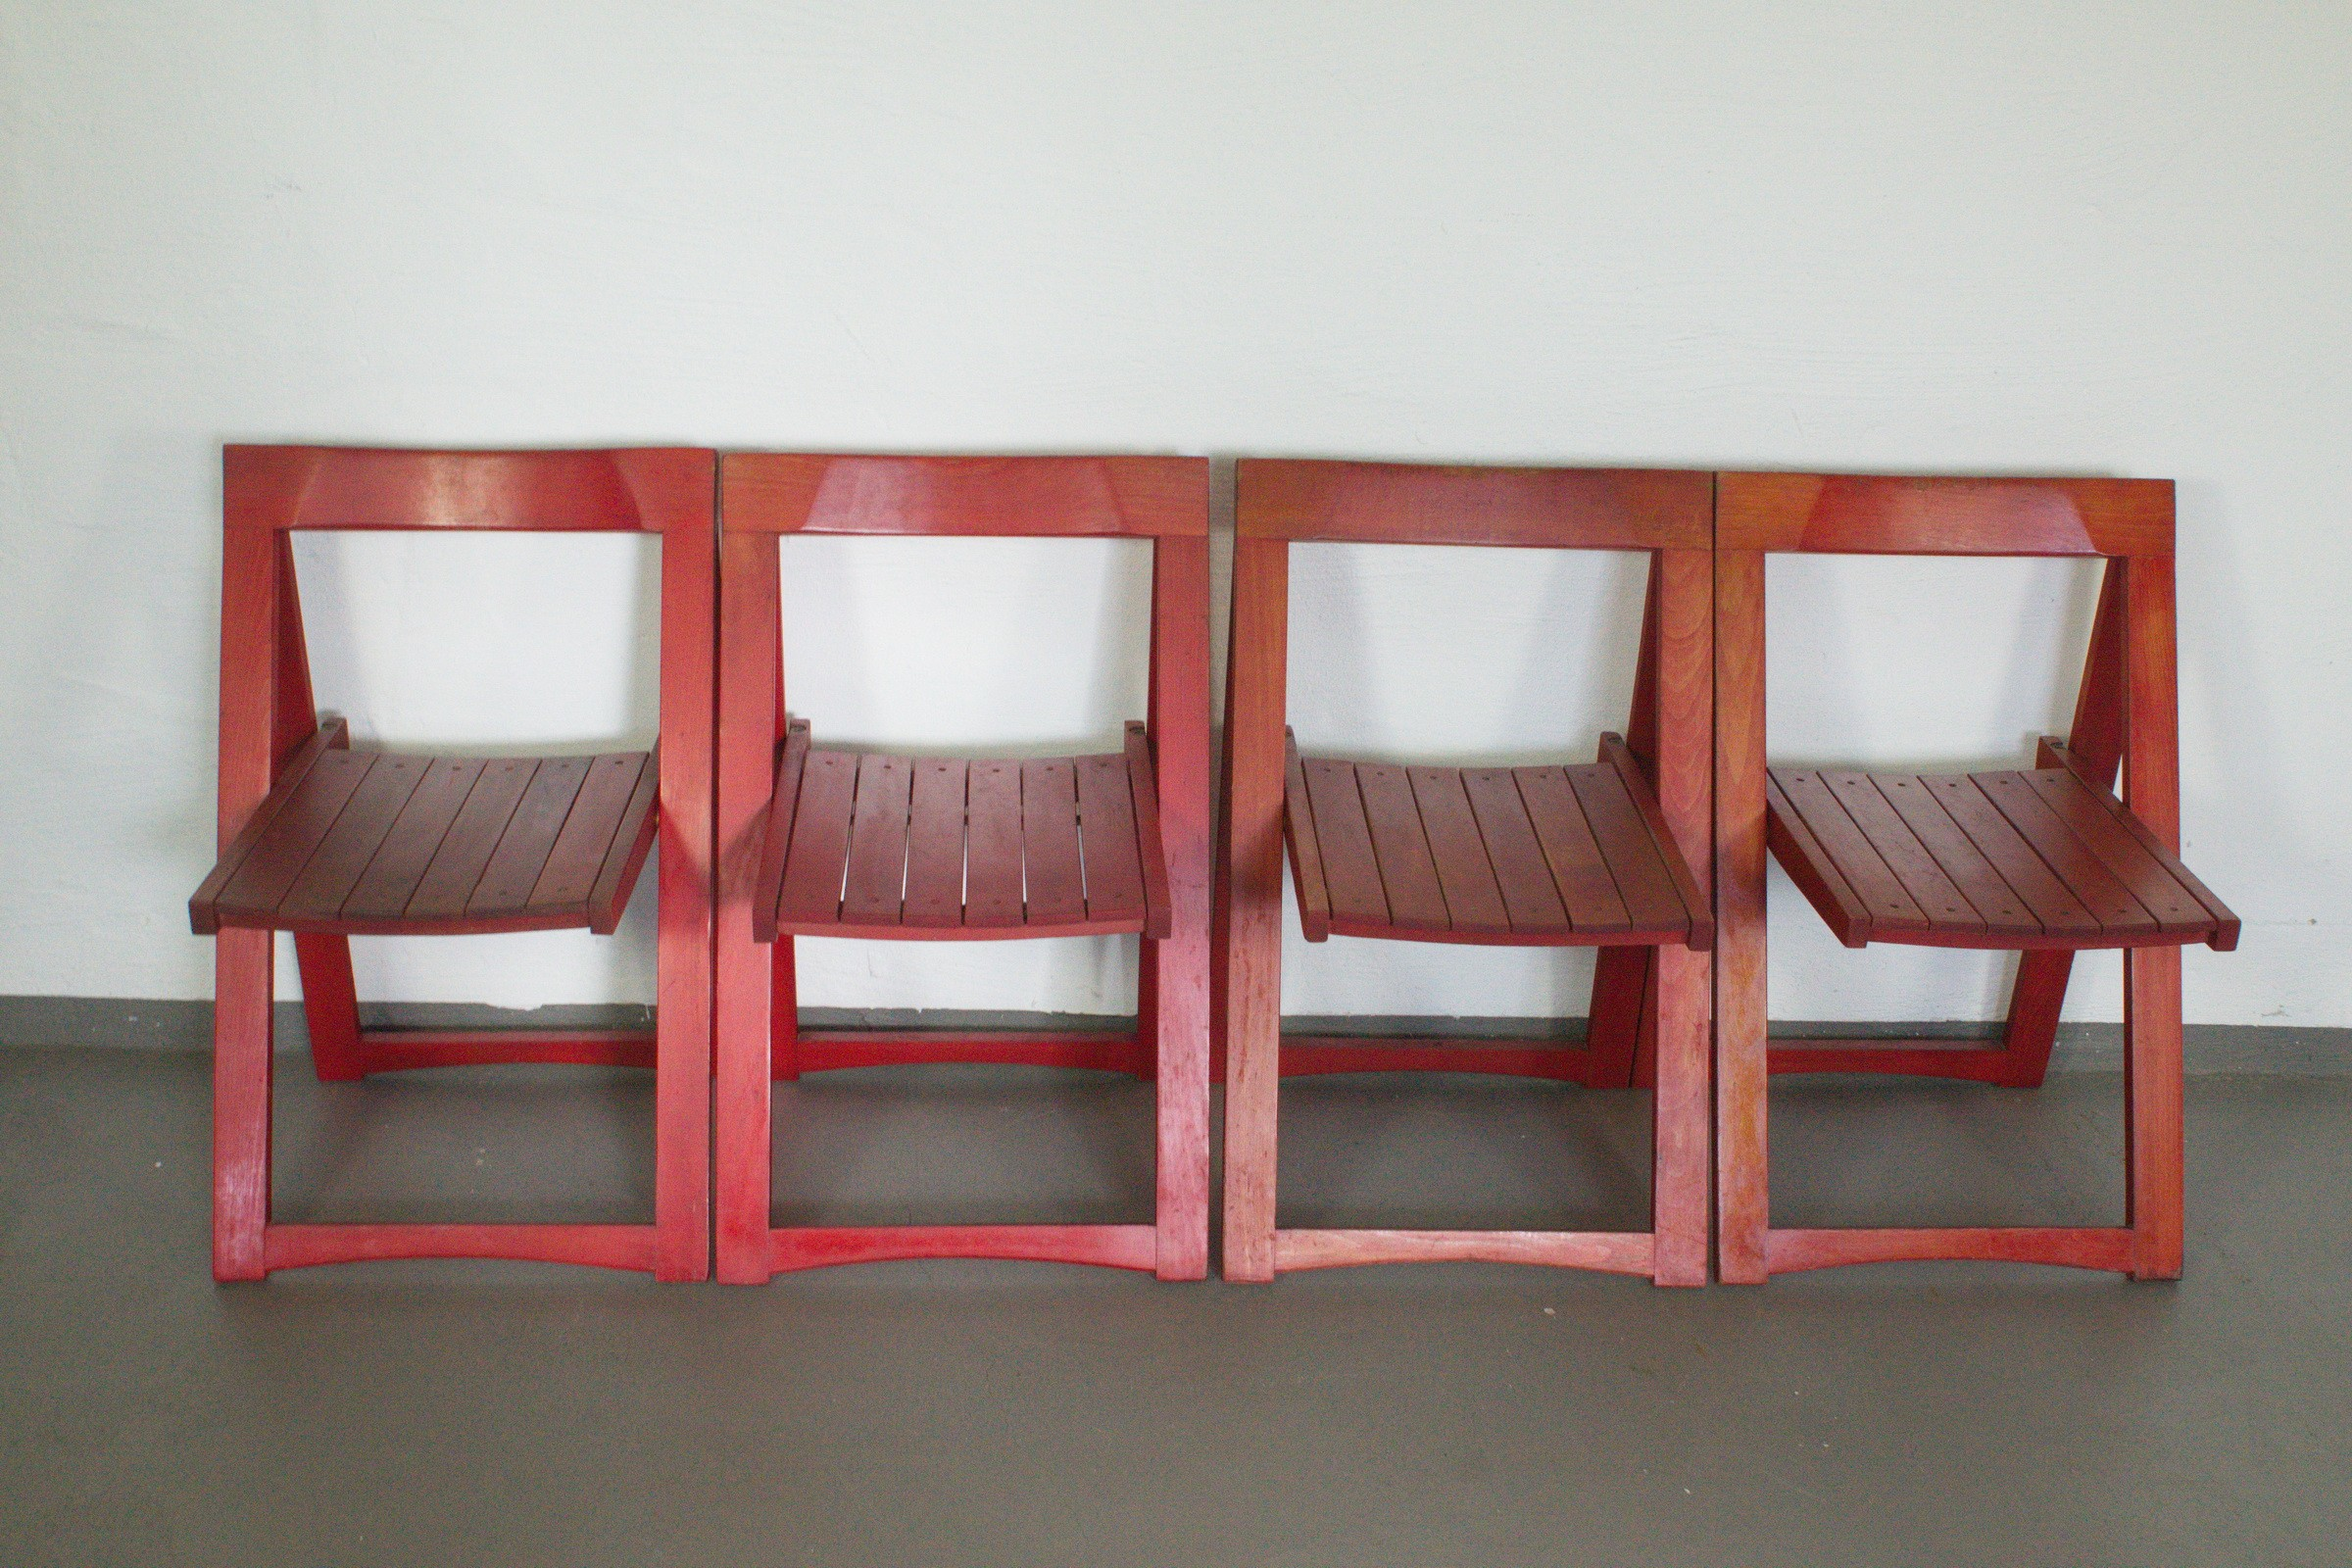 Set of 4 Beech red folding chairs by Aldo Jacober for Bazzani